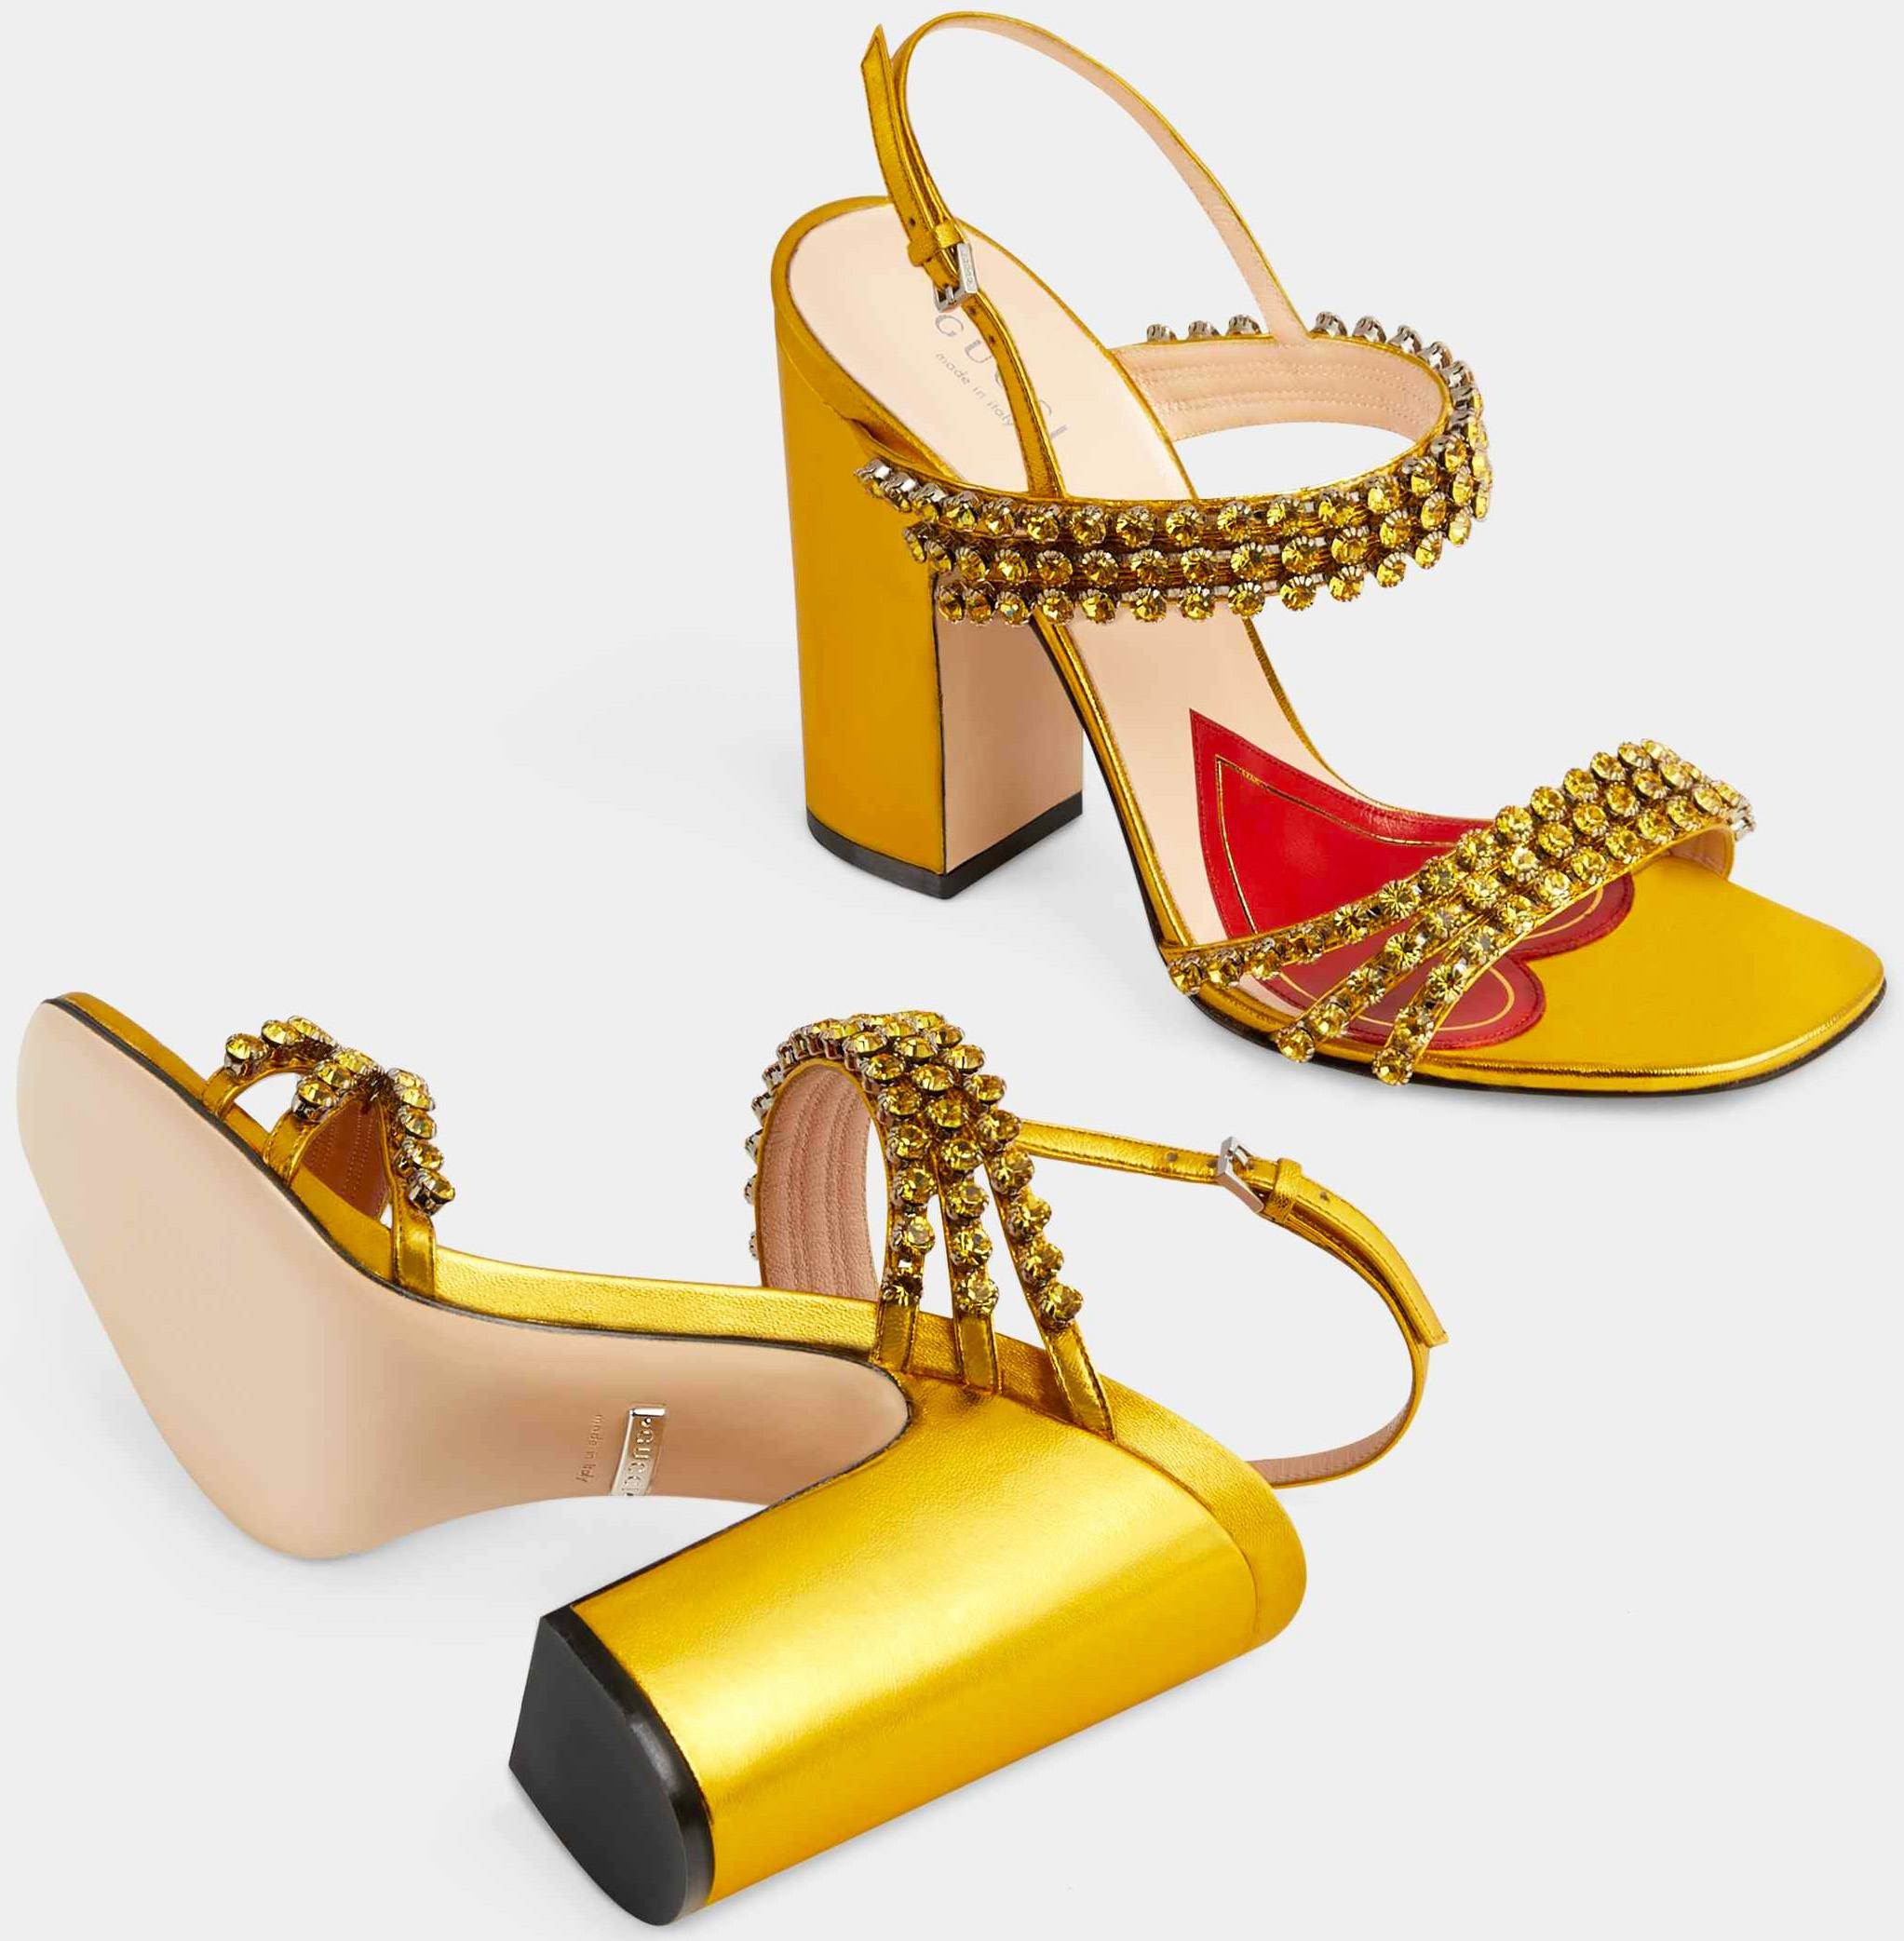 Gucci Metallic Sandal with Crystals in Gold Metallic